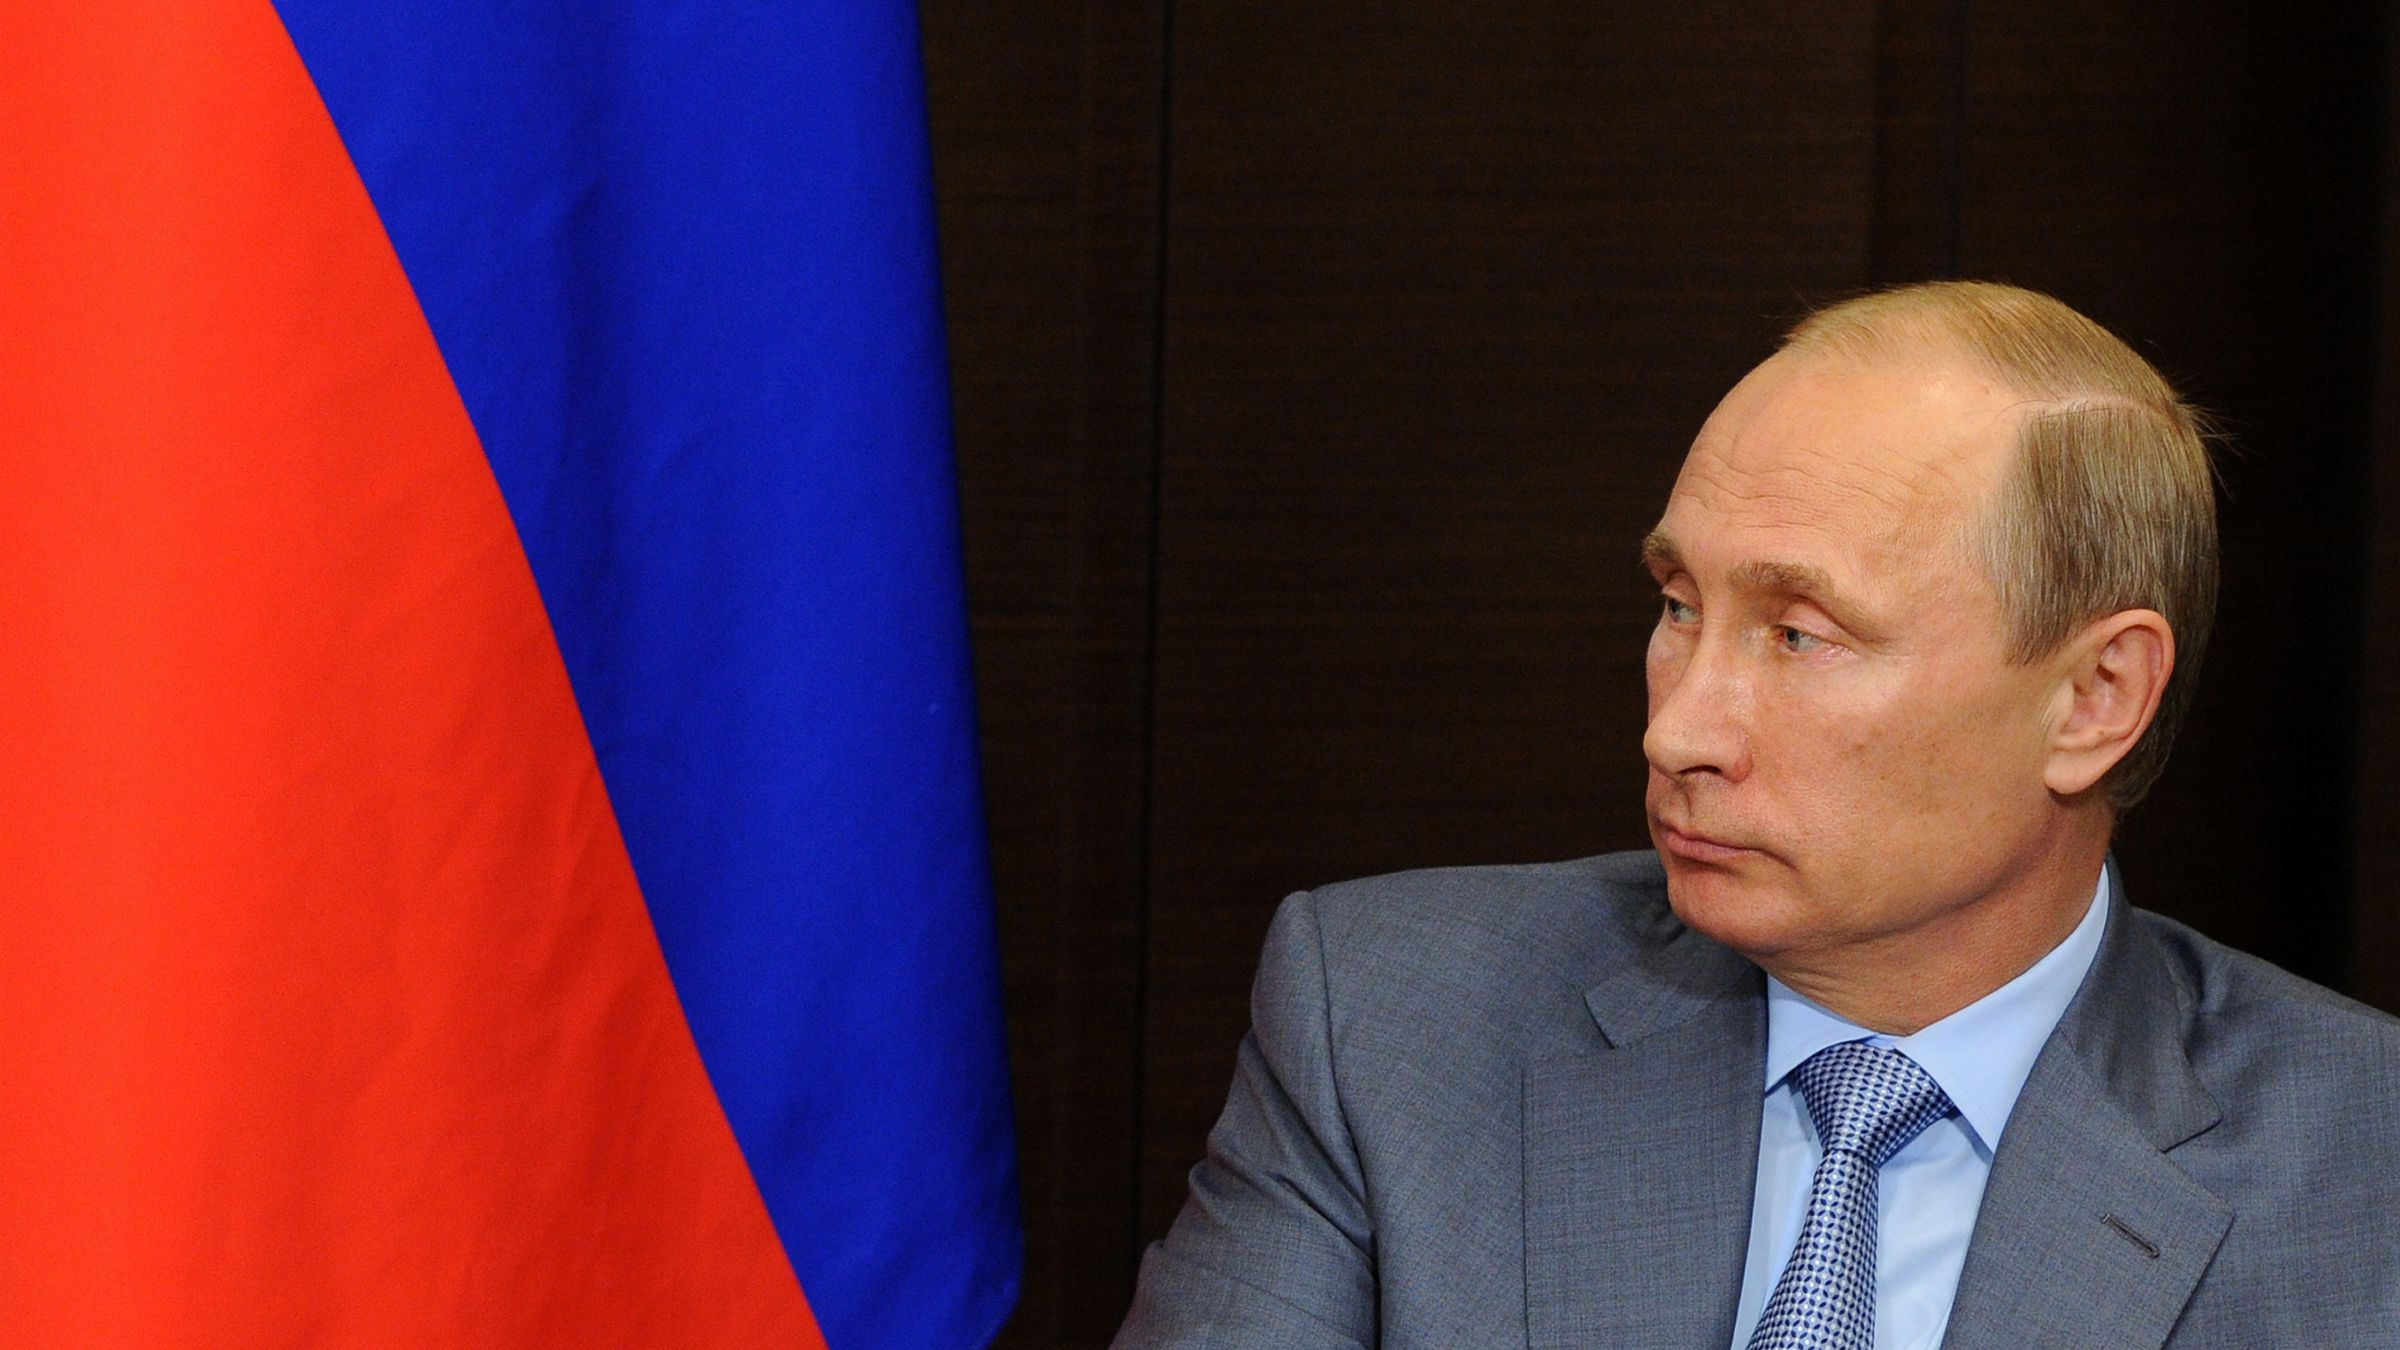 Russian President Vladimir Putin listens to Finnish President Sauli Niinisto prior to their talks at a residence at the Black Sea resort of Sochi, southern Russia, Friday, Aug. 15, 2014. Putin met with his Finnish counterpart to discuss interaction between the two countries, as well as international problems, first of all, the situation in Ukraine, the Kremlin press service reported. (AP Photo/RIA-Novosti, Mikhail Klimentyev, Presidential Press Service)